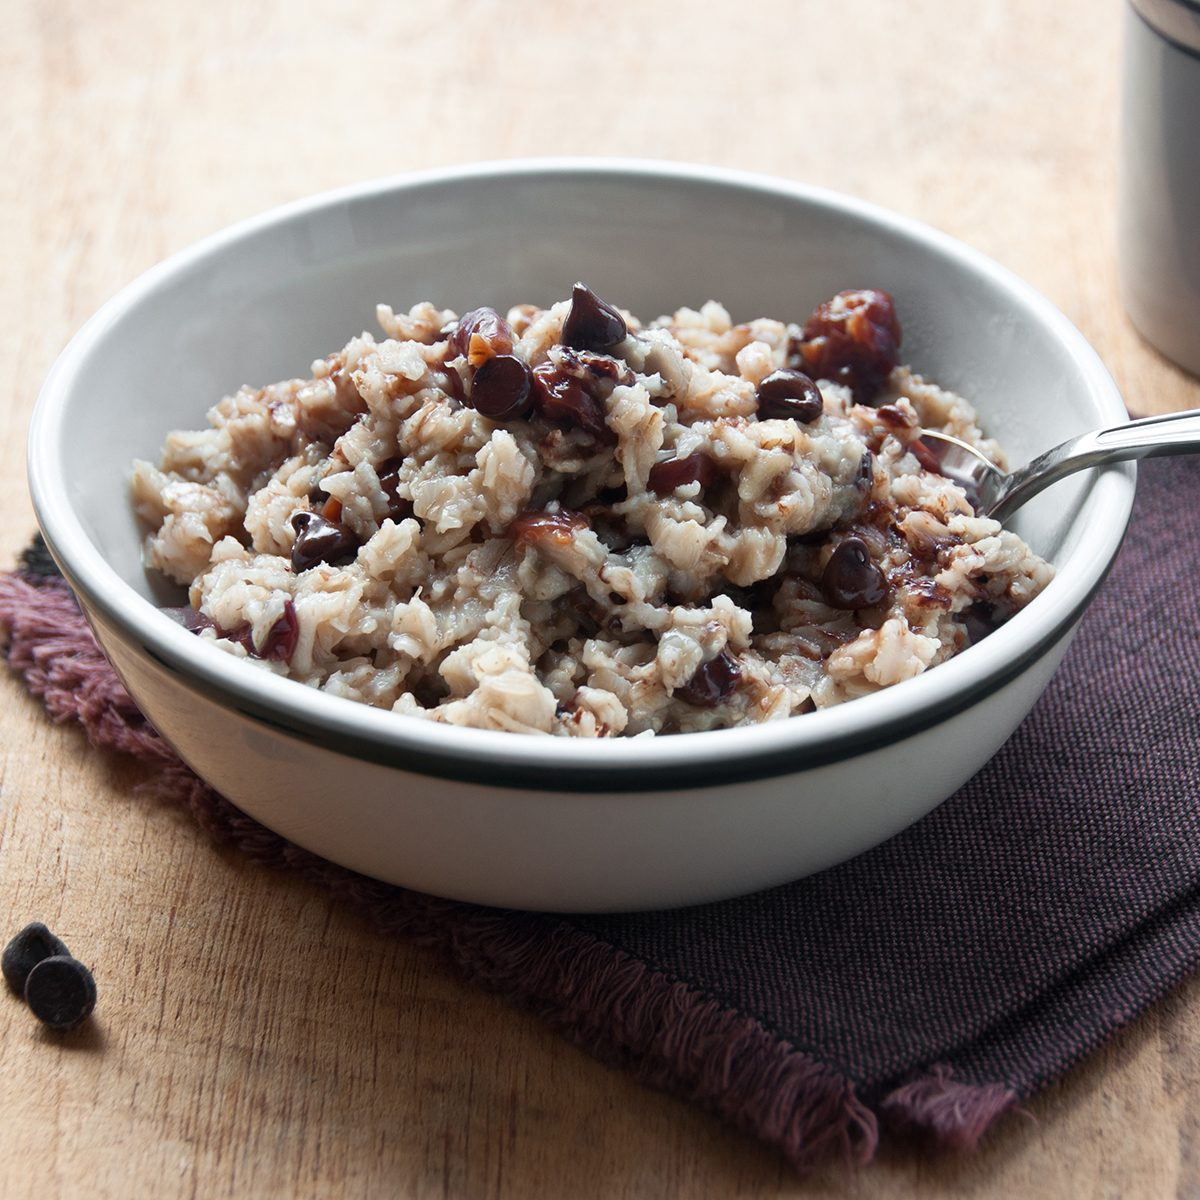 A bowl of oatmeal with dried sour cherries and chocolate chips awaits the morning diner.